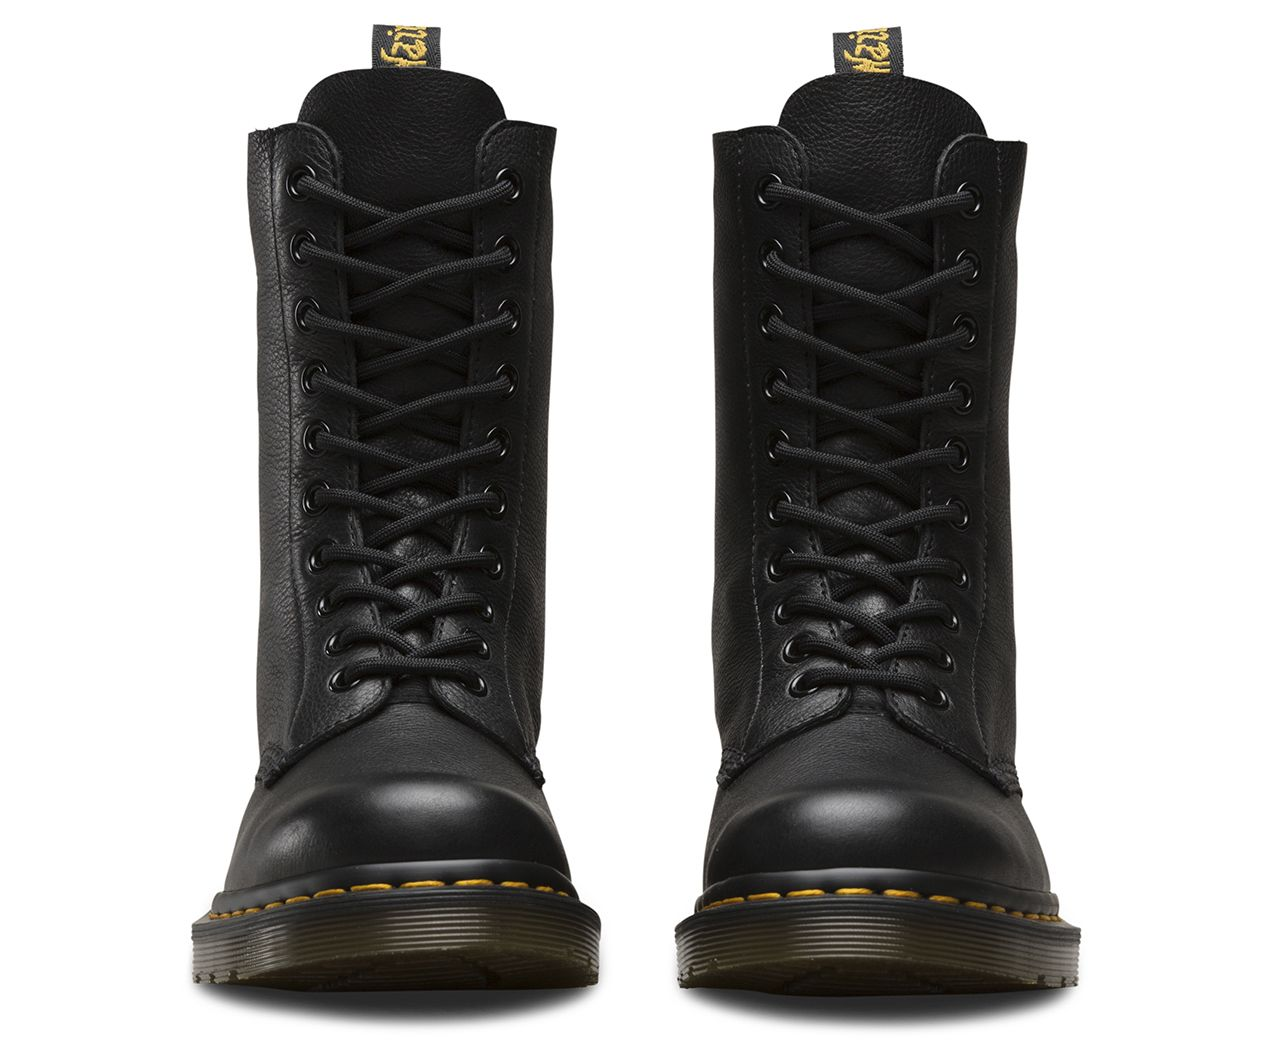 eye boot is a classic Dr. Martens